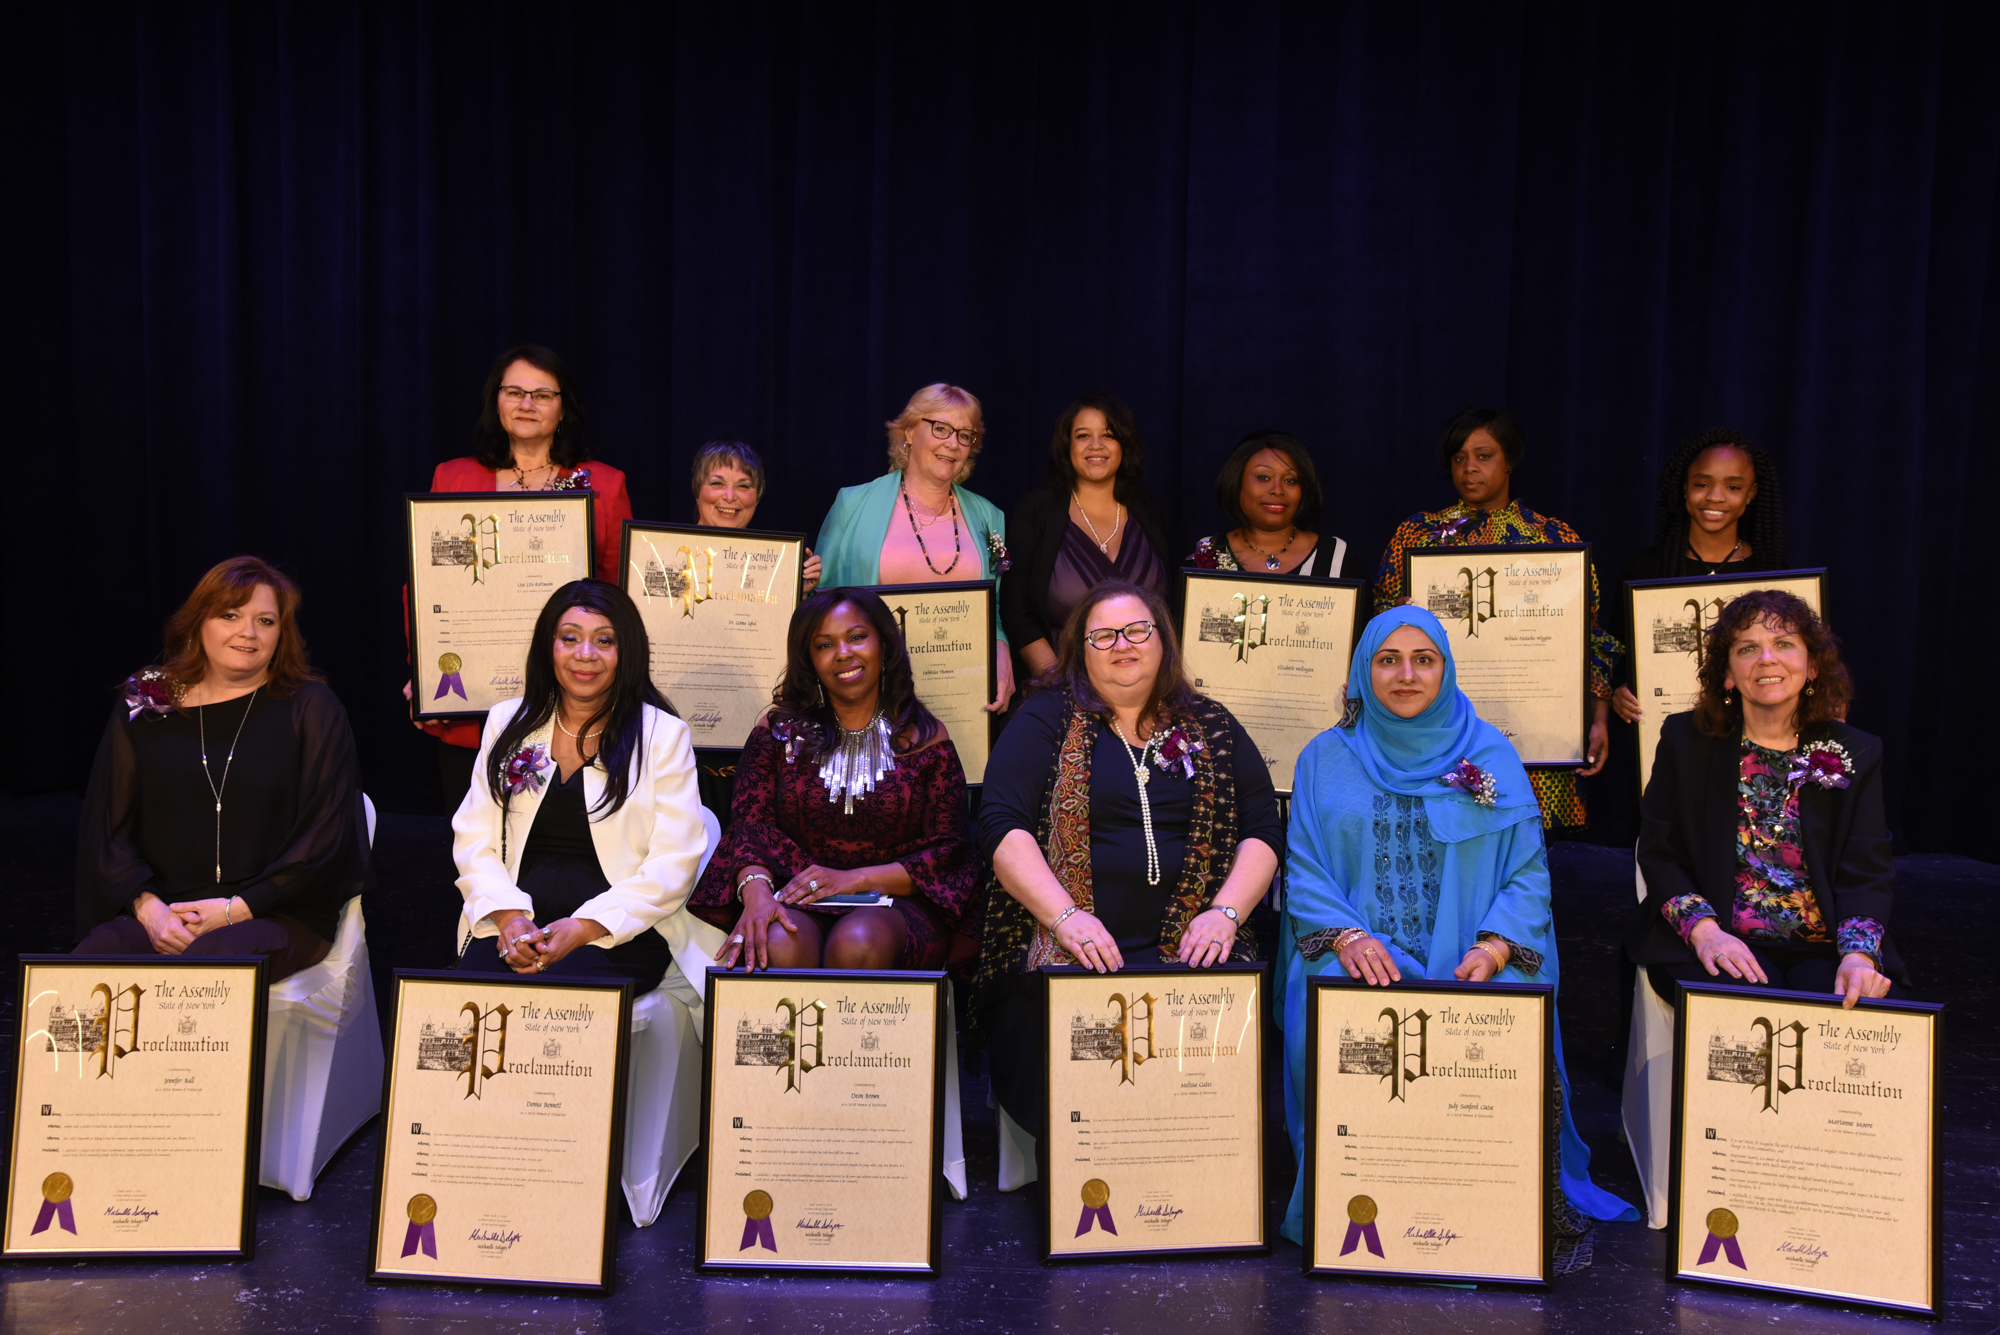 Assemblywoman Michaelle C. Solages hosted her 5th Annual Women of Distinction Luncheon to honor women who have gone above and beyond to enhance the 22nd Assembly District. Please feel free to call ou